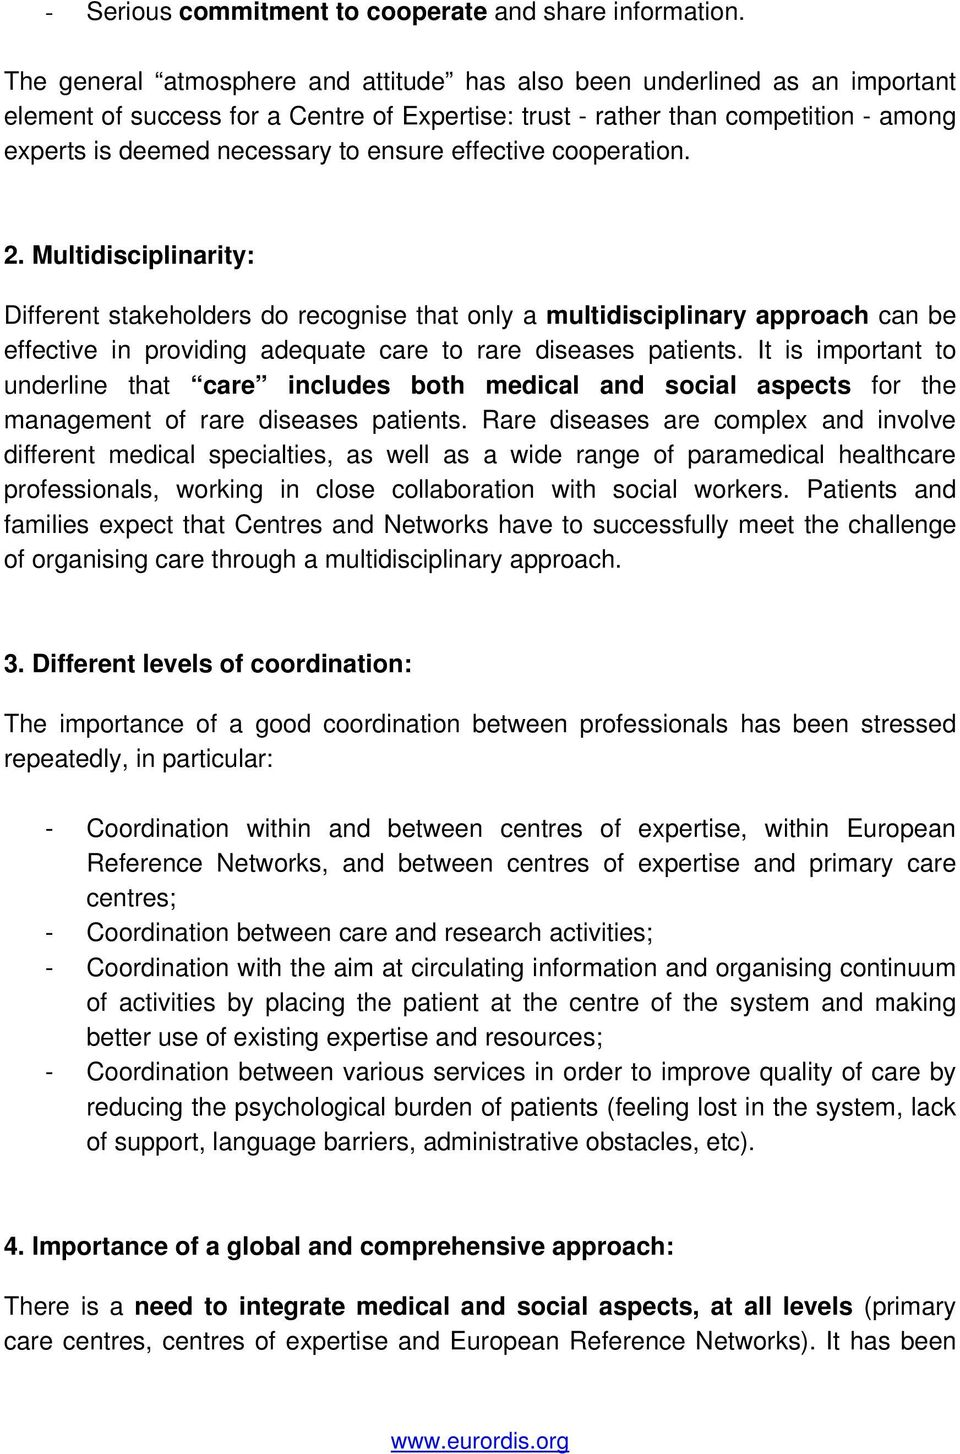 ensure effective cooperation. 2. Multidisciplinarity: Different stakeholders do recognise that only a multidisciplinary approach can be effective in providing adequate care to rare diseases patients.